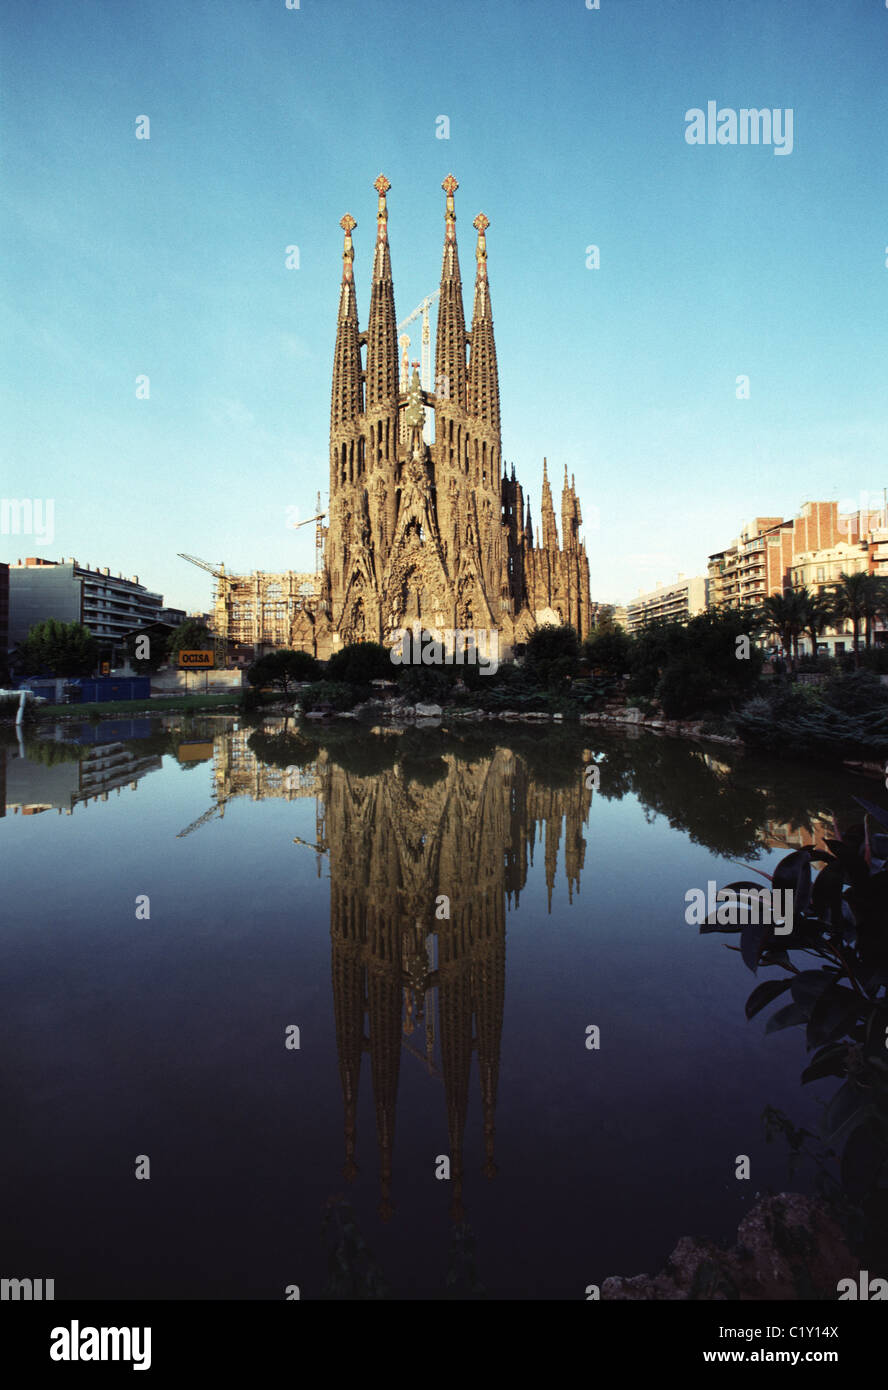 Reflection of Sagrada Familia Cathedral in pond - Stock Image